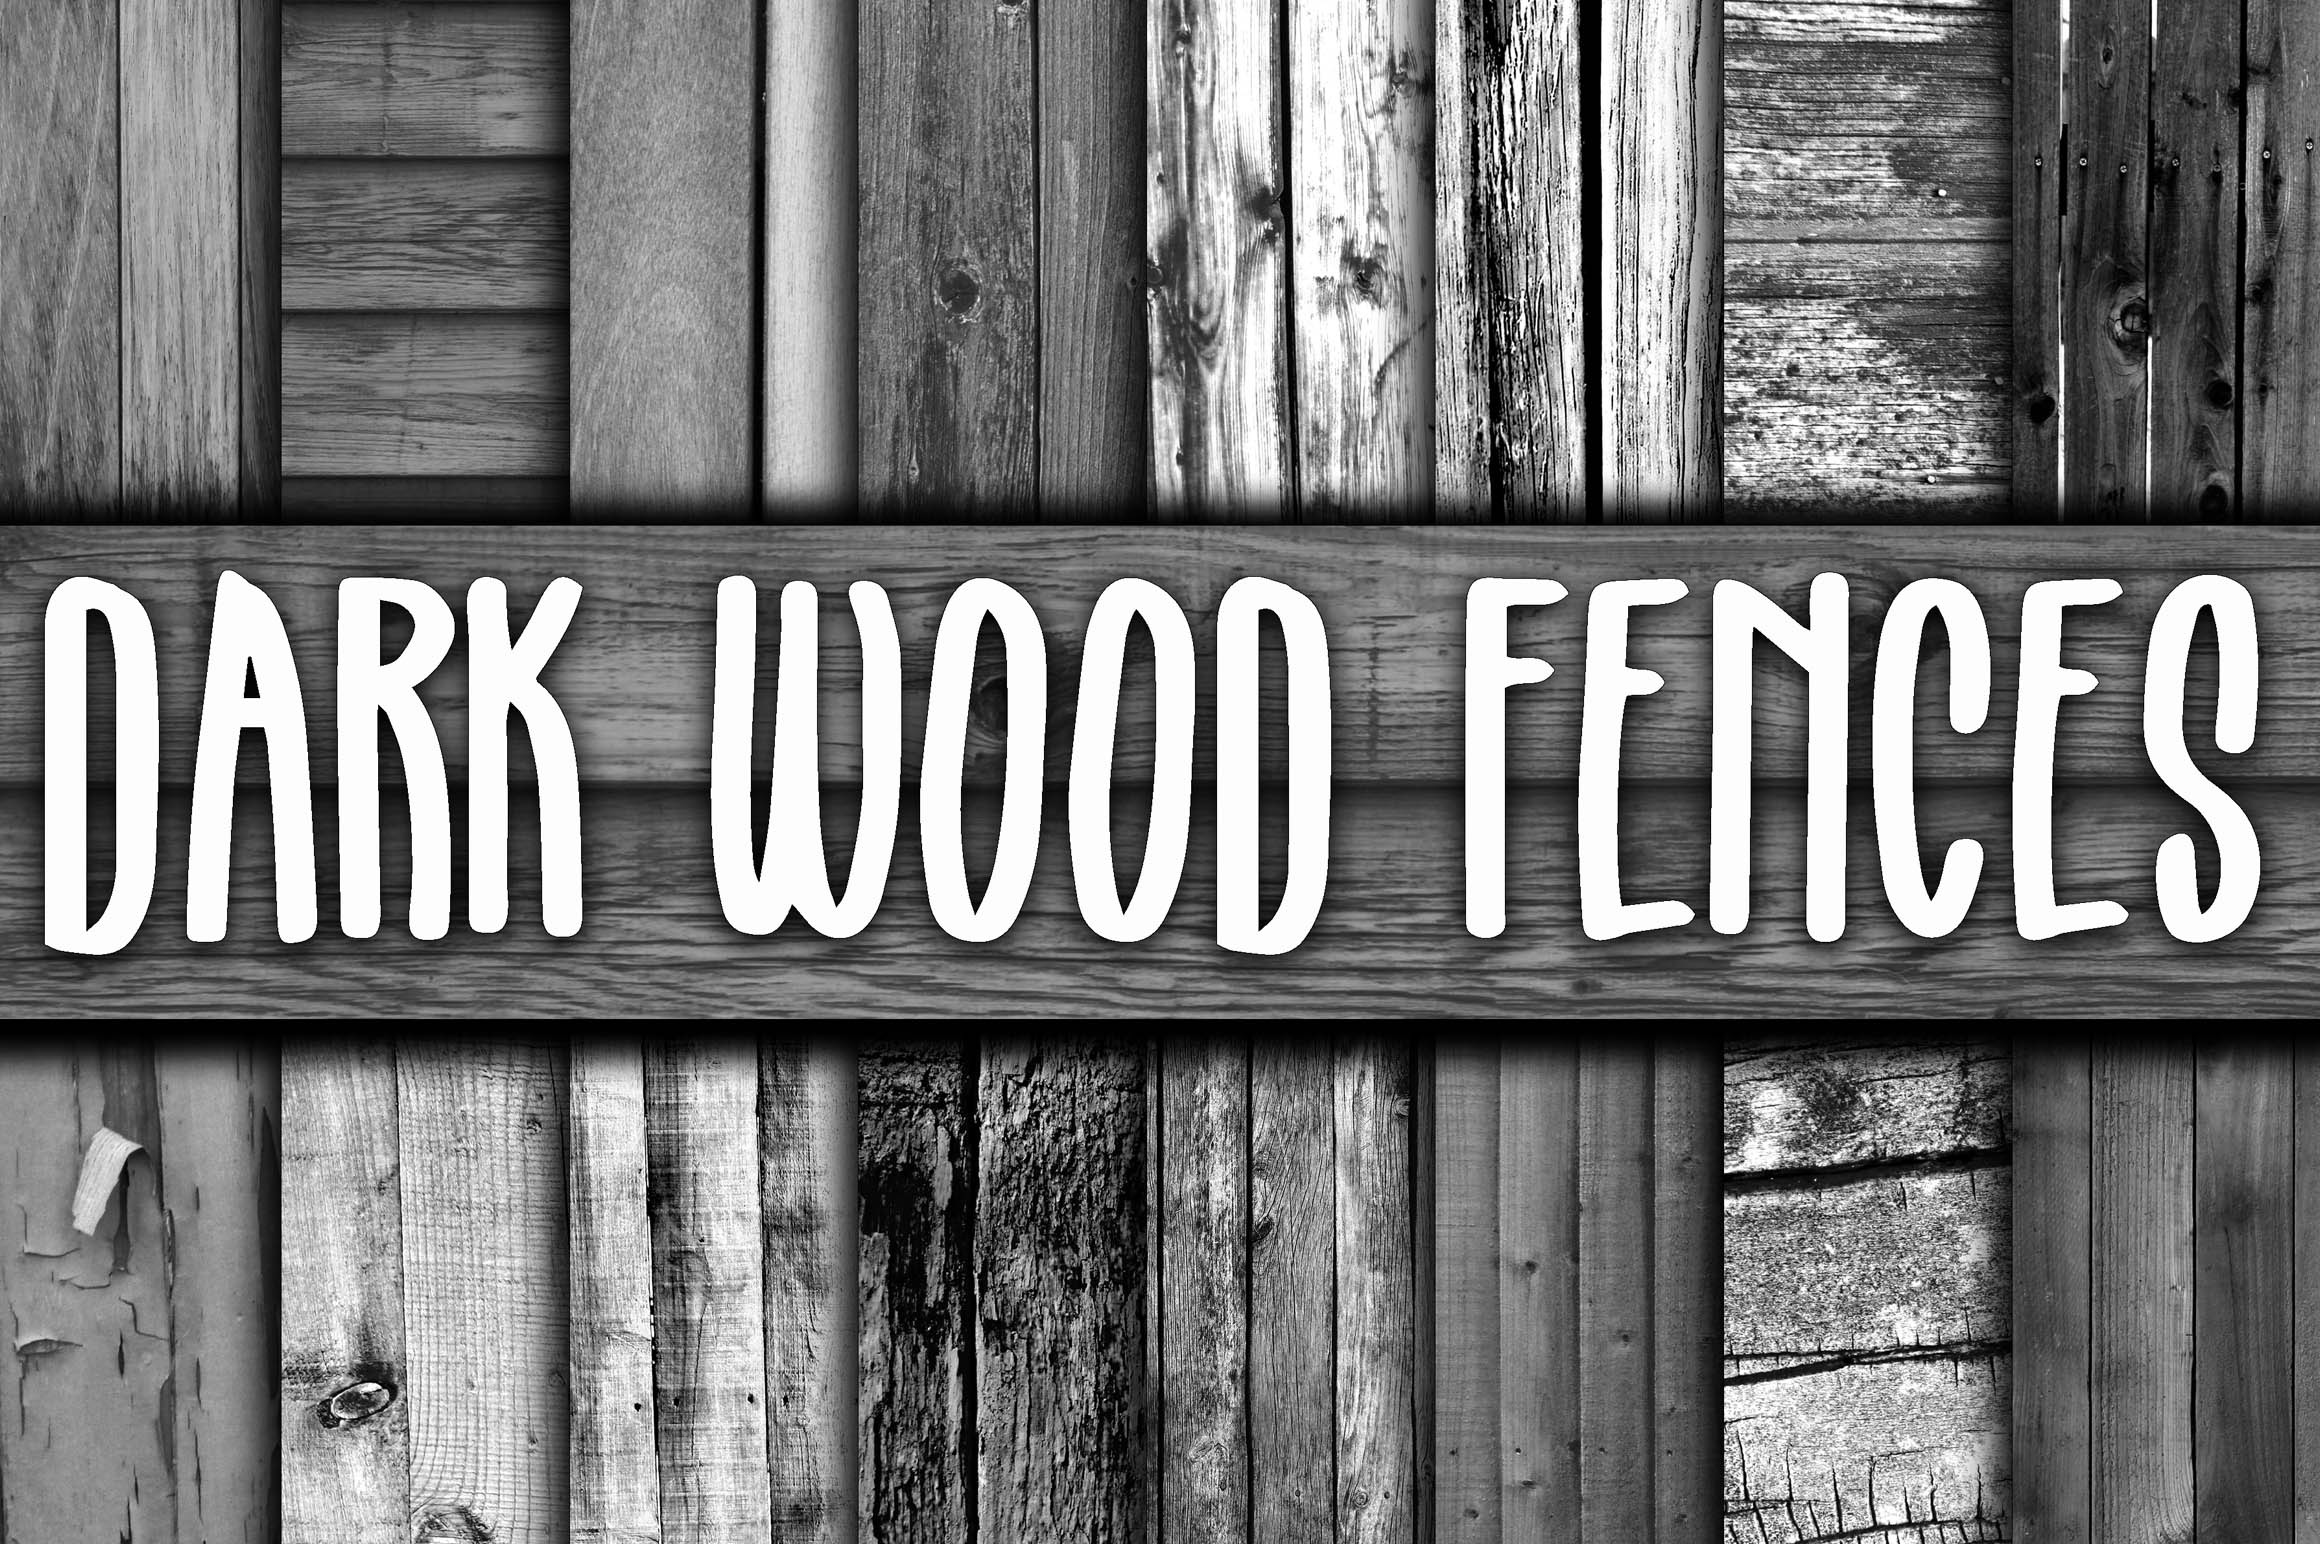 Dark Wood Fence Textures Digital Paper Graphic By oldmarketdesigns Image 1